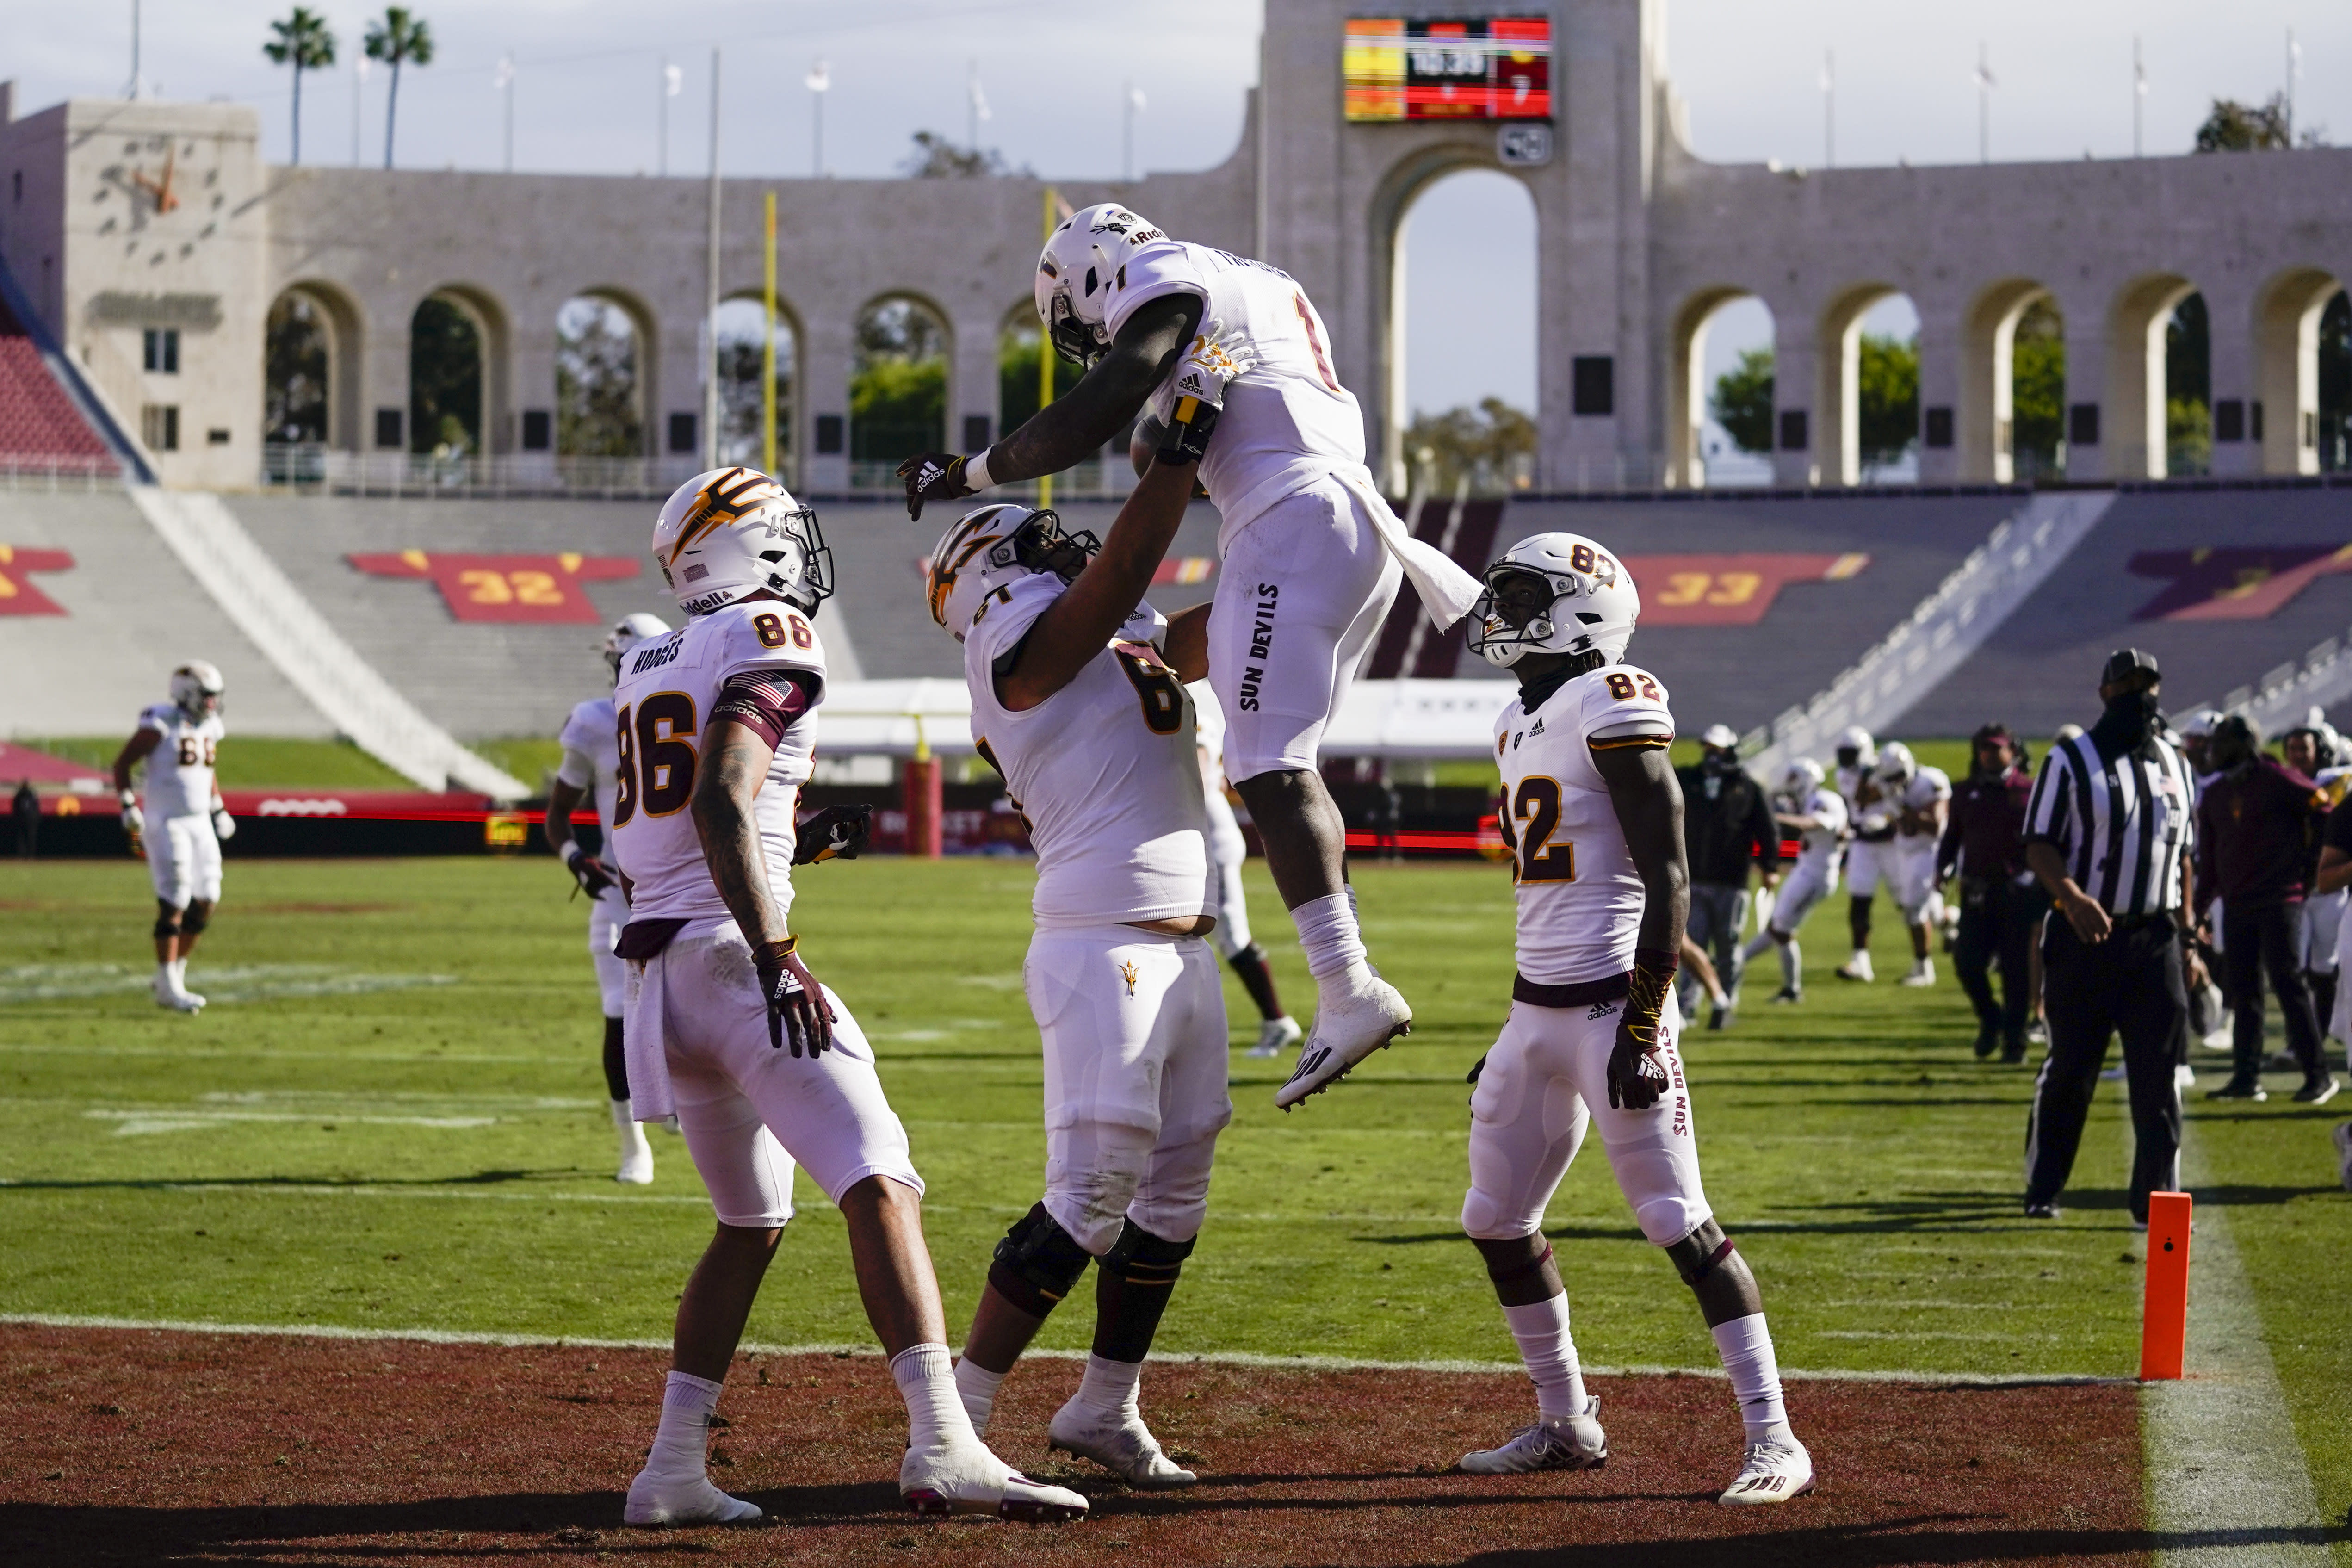 Arizona State running back Chip Trayanum (1) celebrates with teammates after scoring a touchdown against Southern California during the first half of an NCAA college football game is the phrase Saturday, Nov. 7, 2020, in Los Angeles. (AP Photo/Ashley Landis)